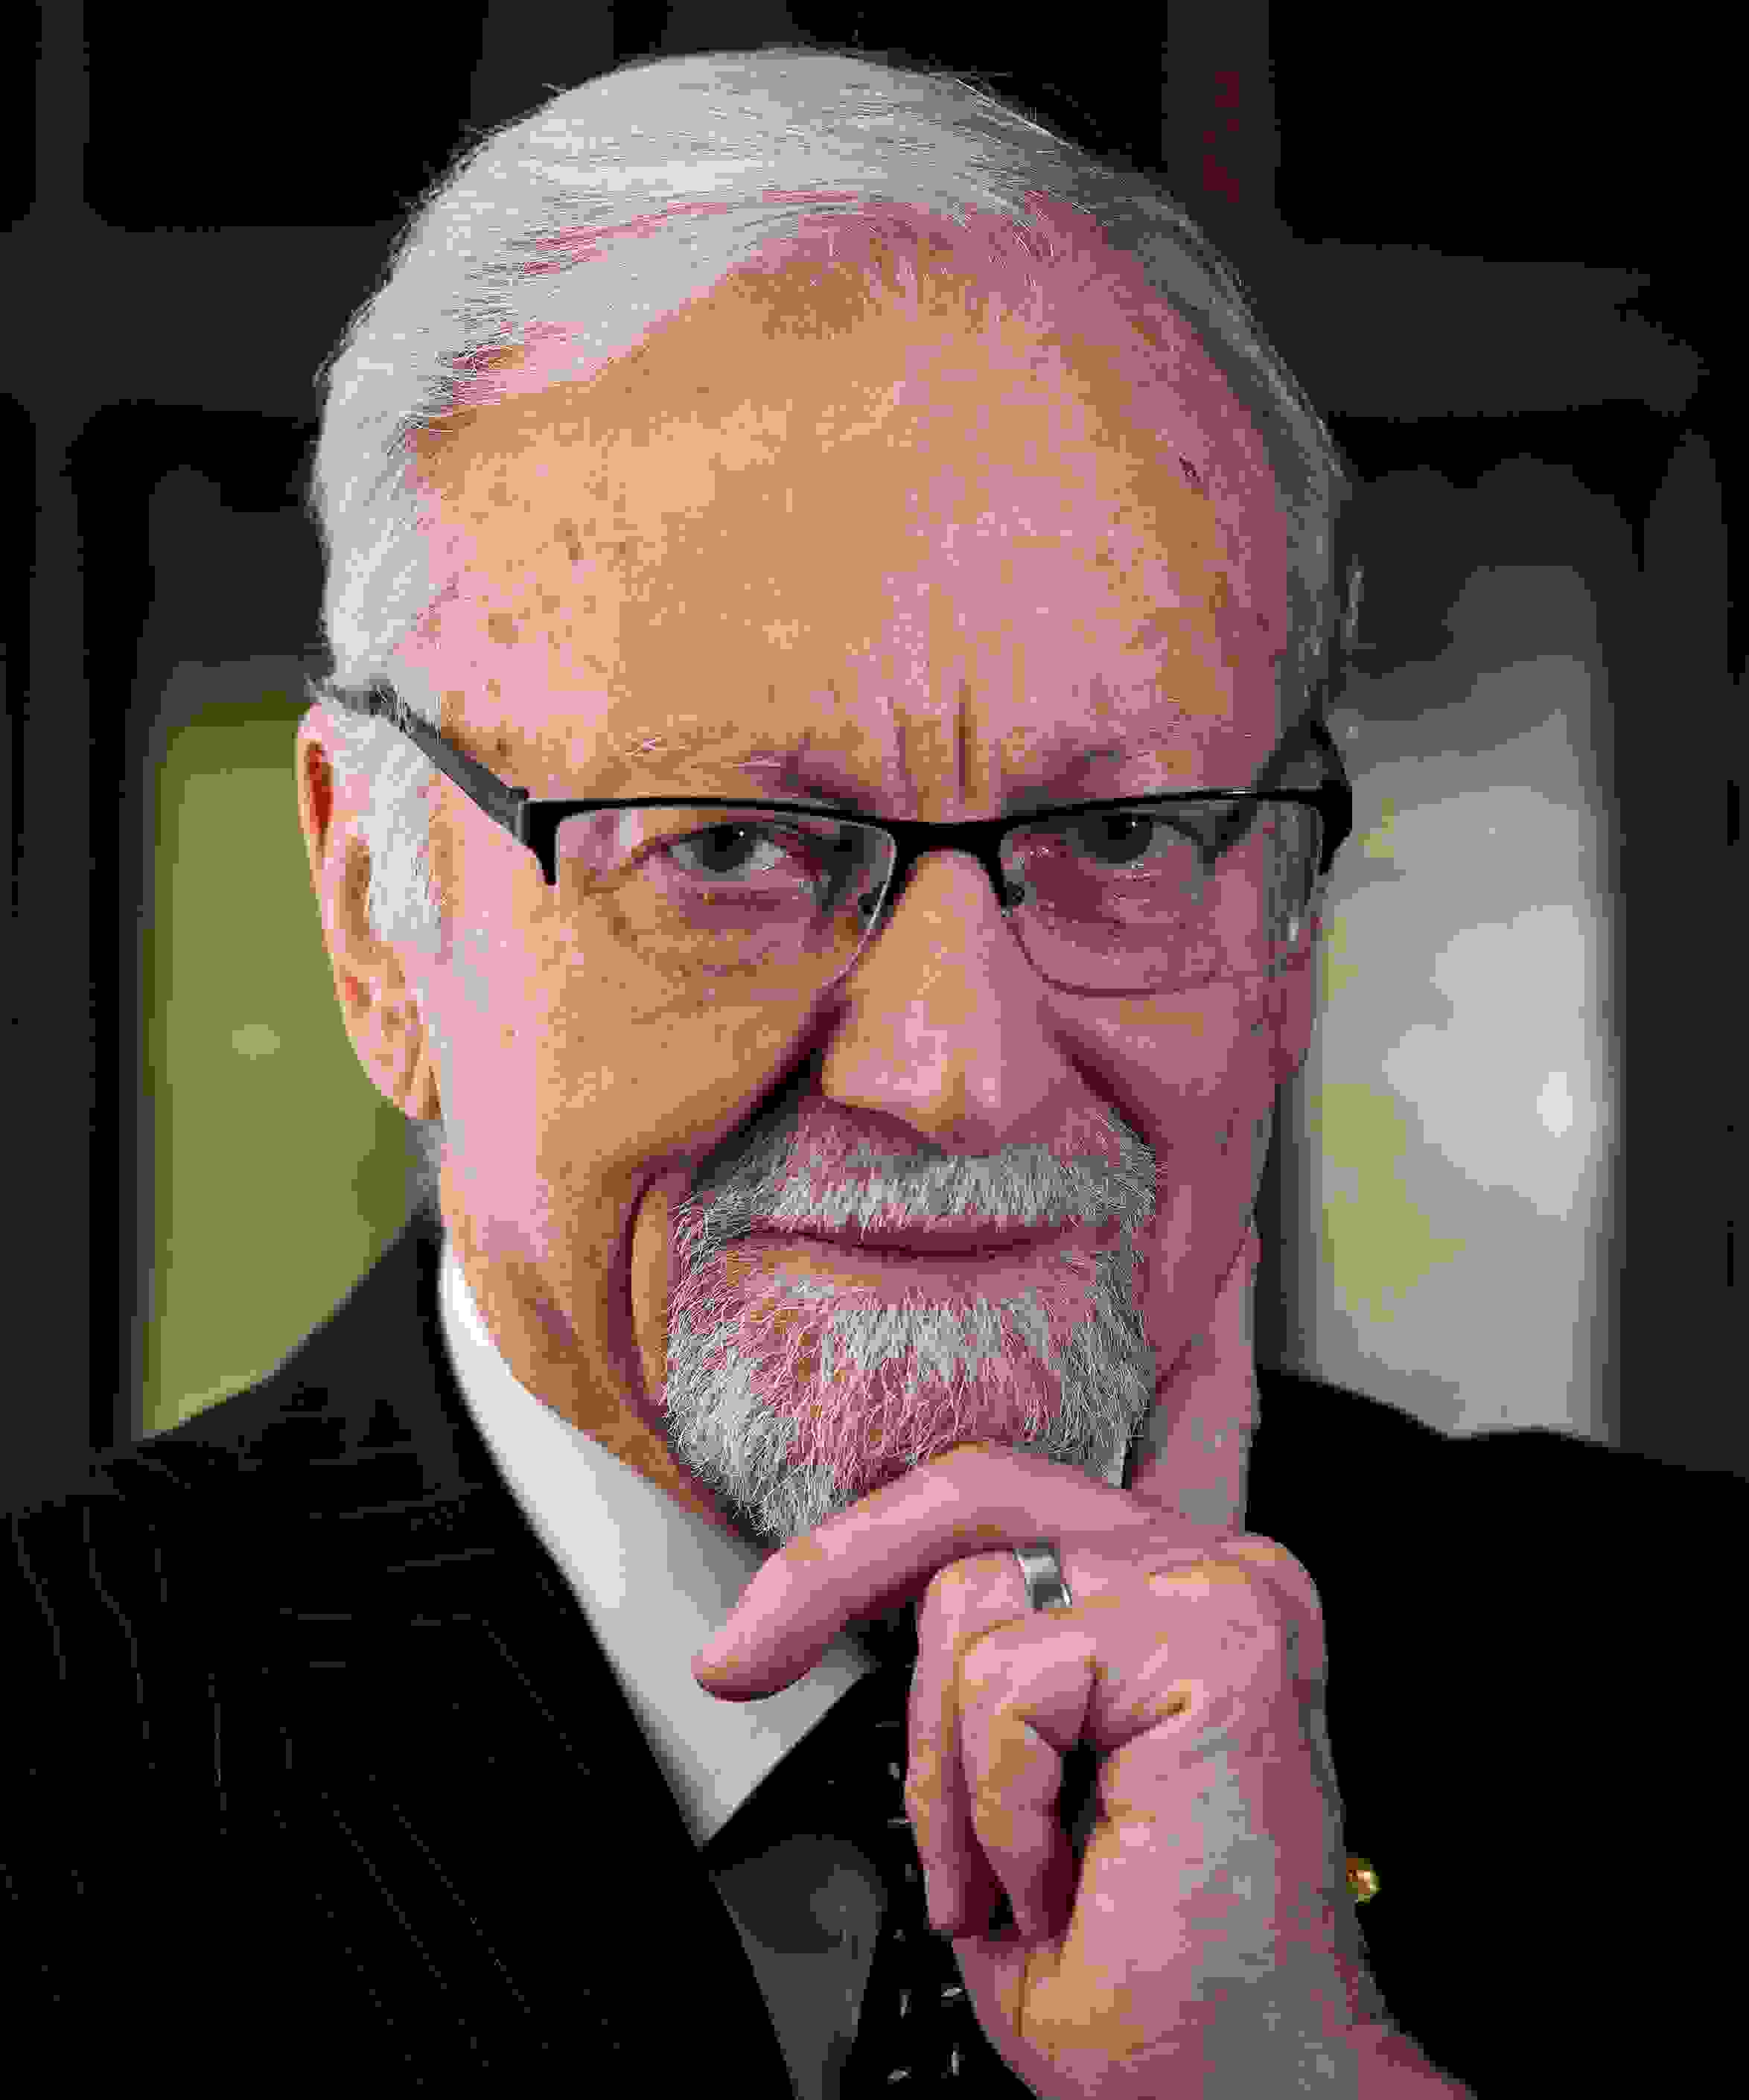 Gareth Evans: Incorrigible Optimist